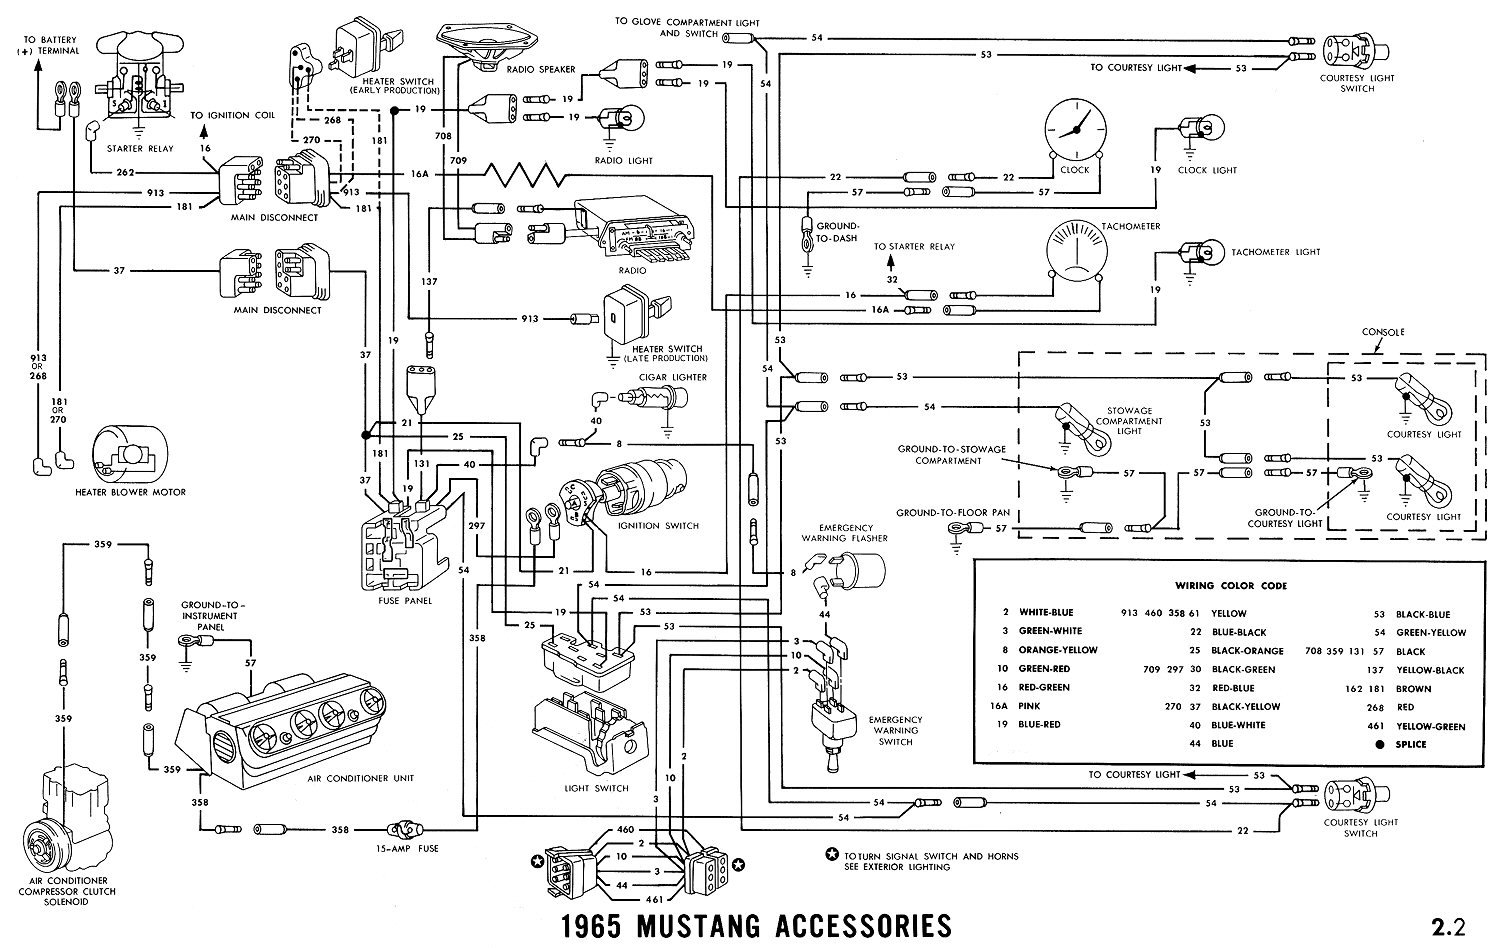 thread reverse light schematic